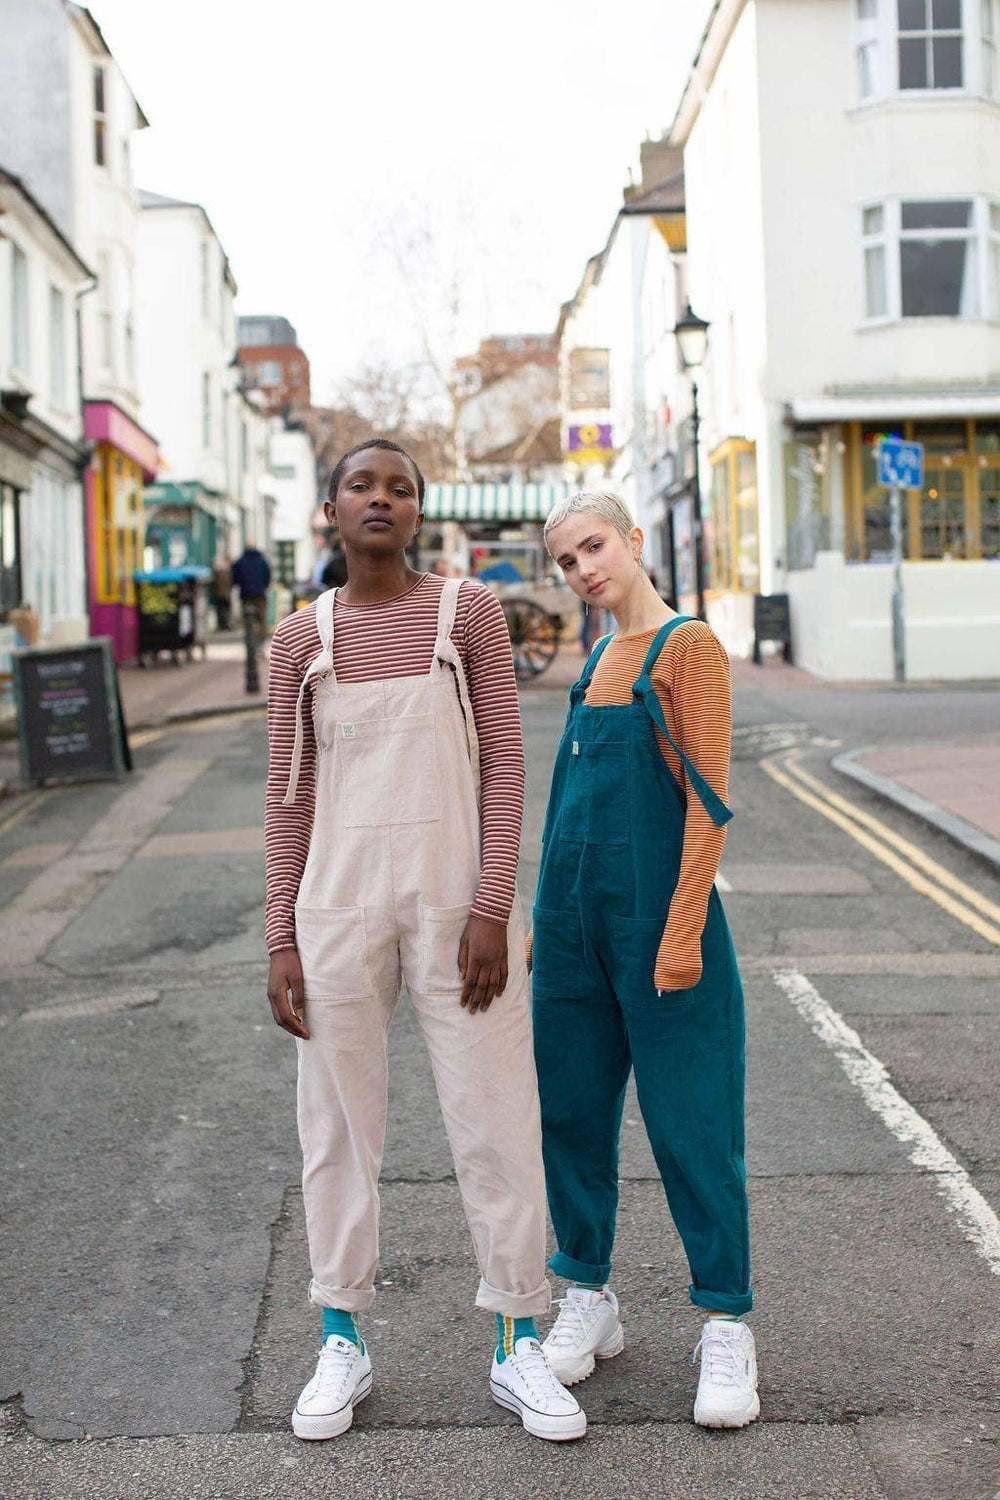 'The Organic Original' Corduroy Dungarees in Teal